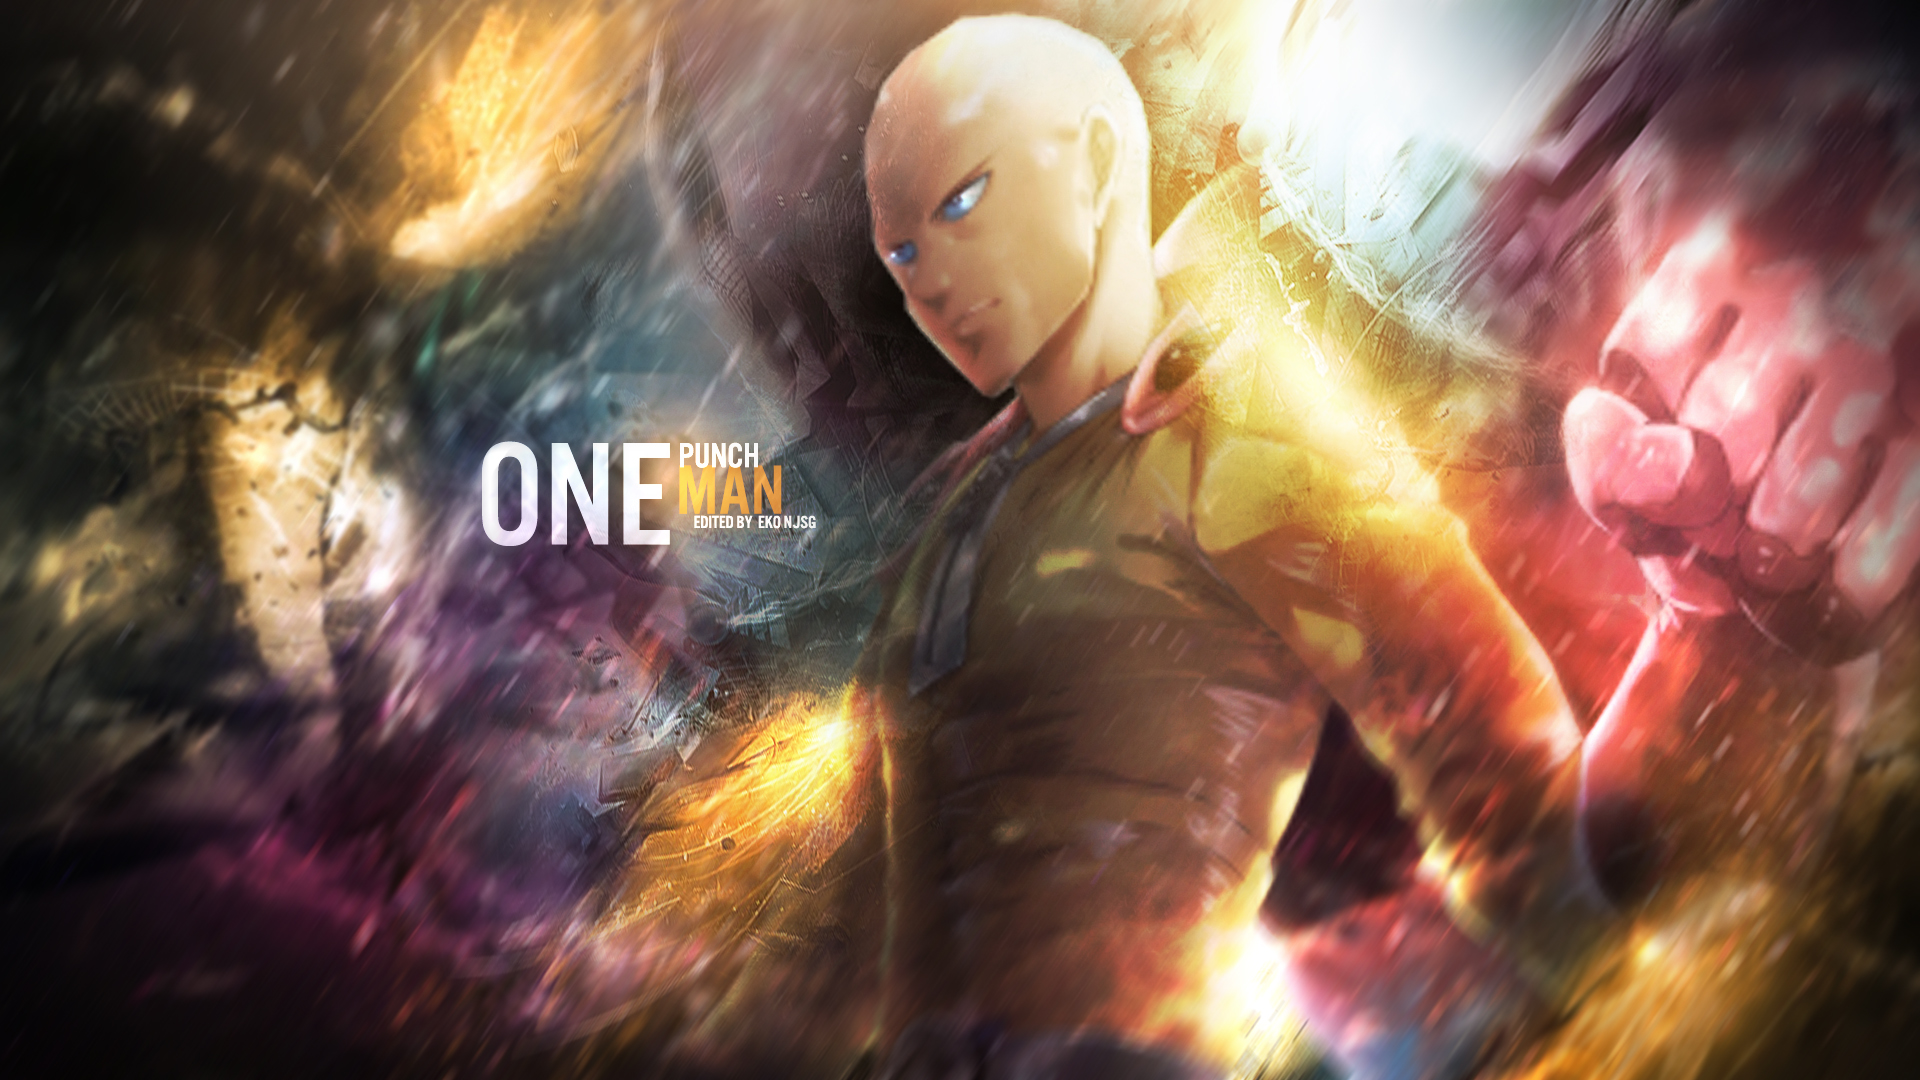 one-punch-man-1080p-Buscar-con-Google-wallpaper-wp3609260